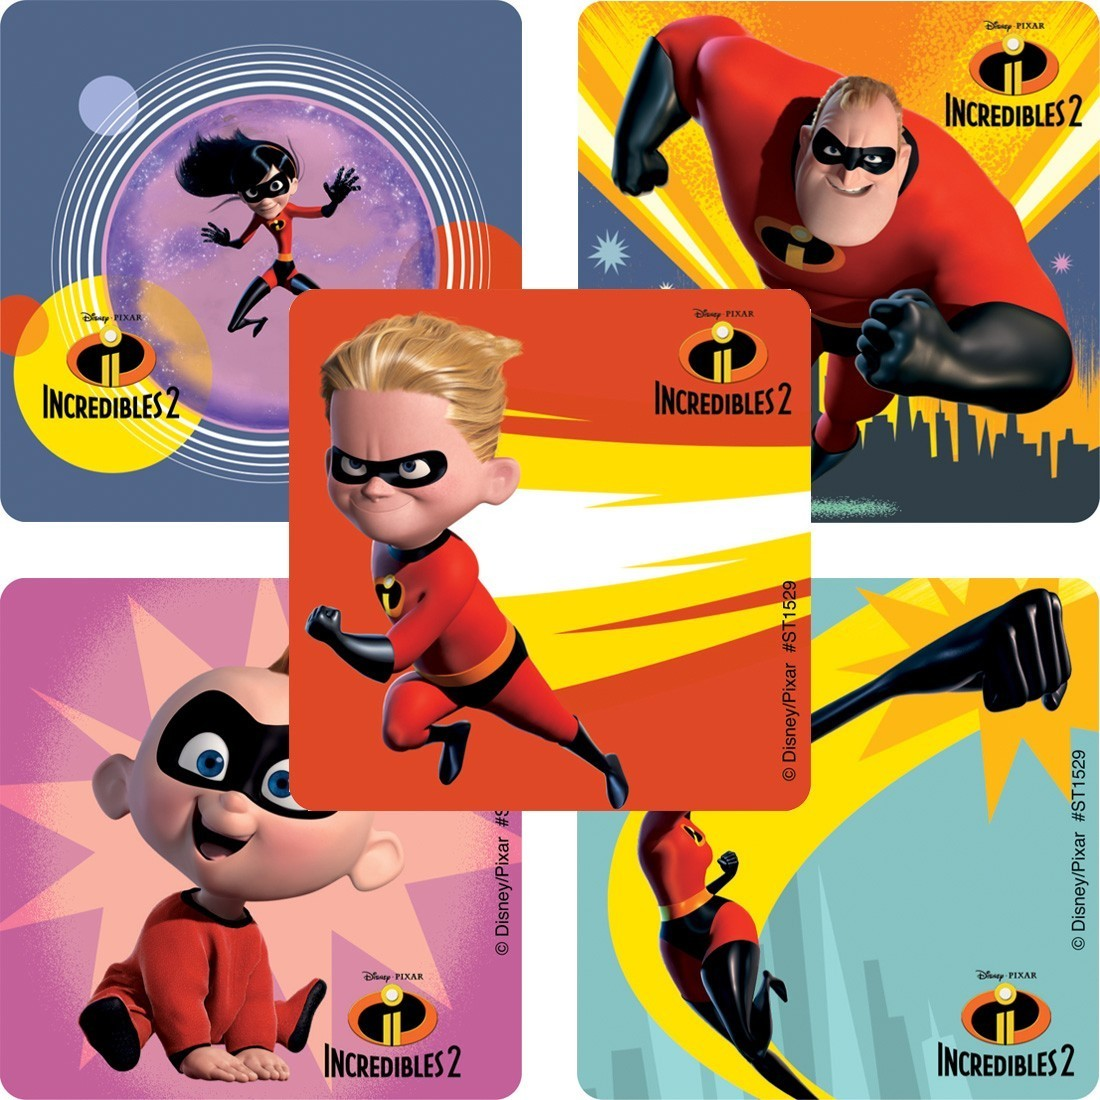 Incredibles 2 Movie Stickers [image]